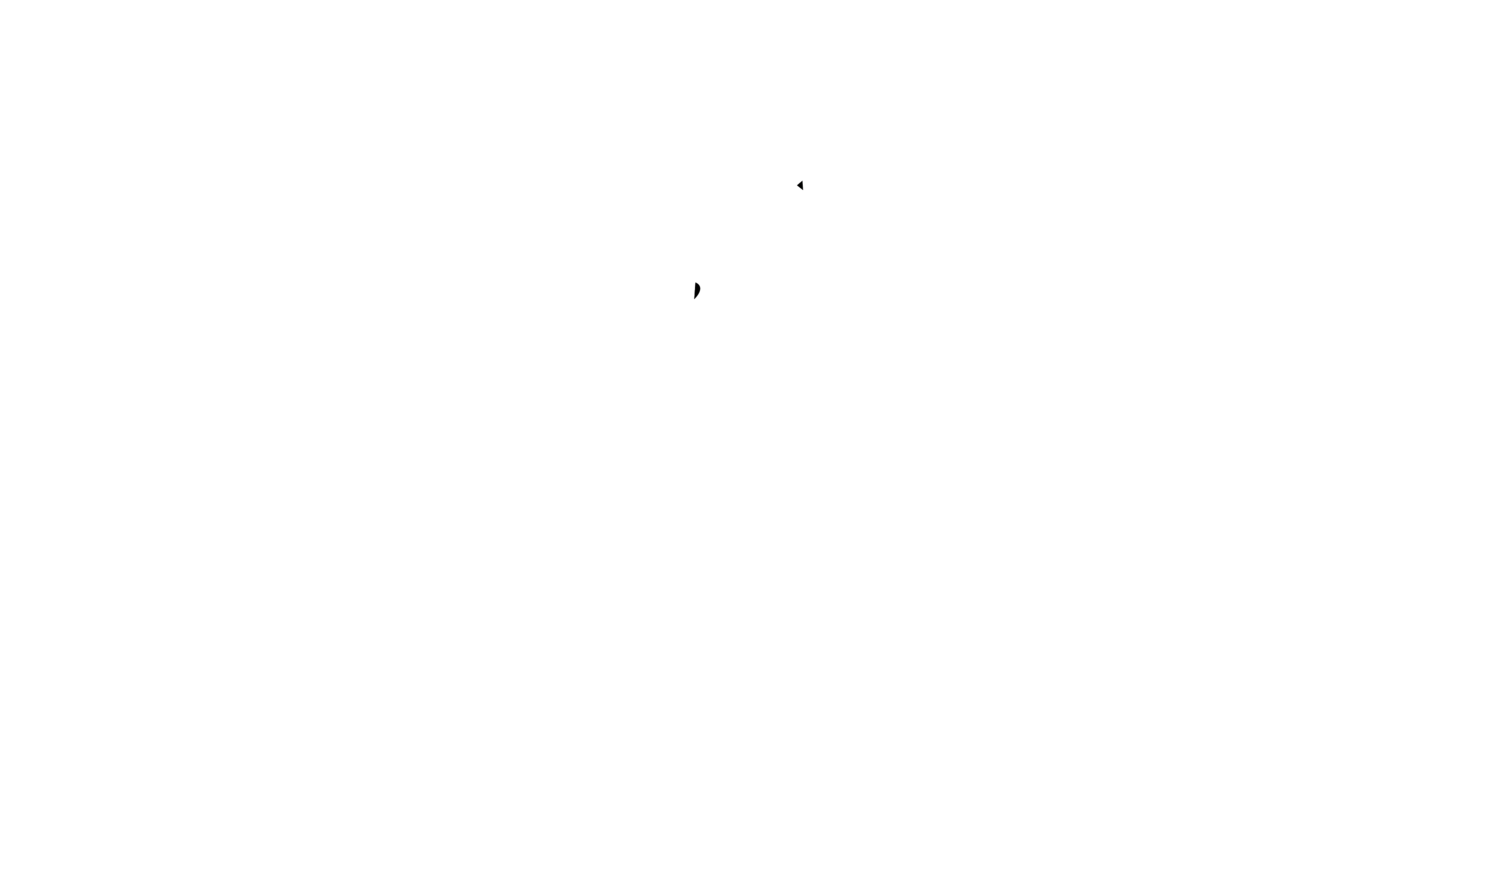 Cooper Gulch Common Grounds